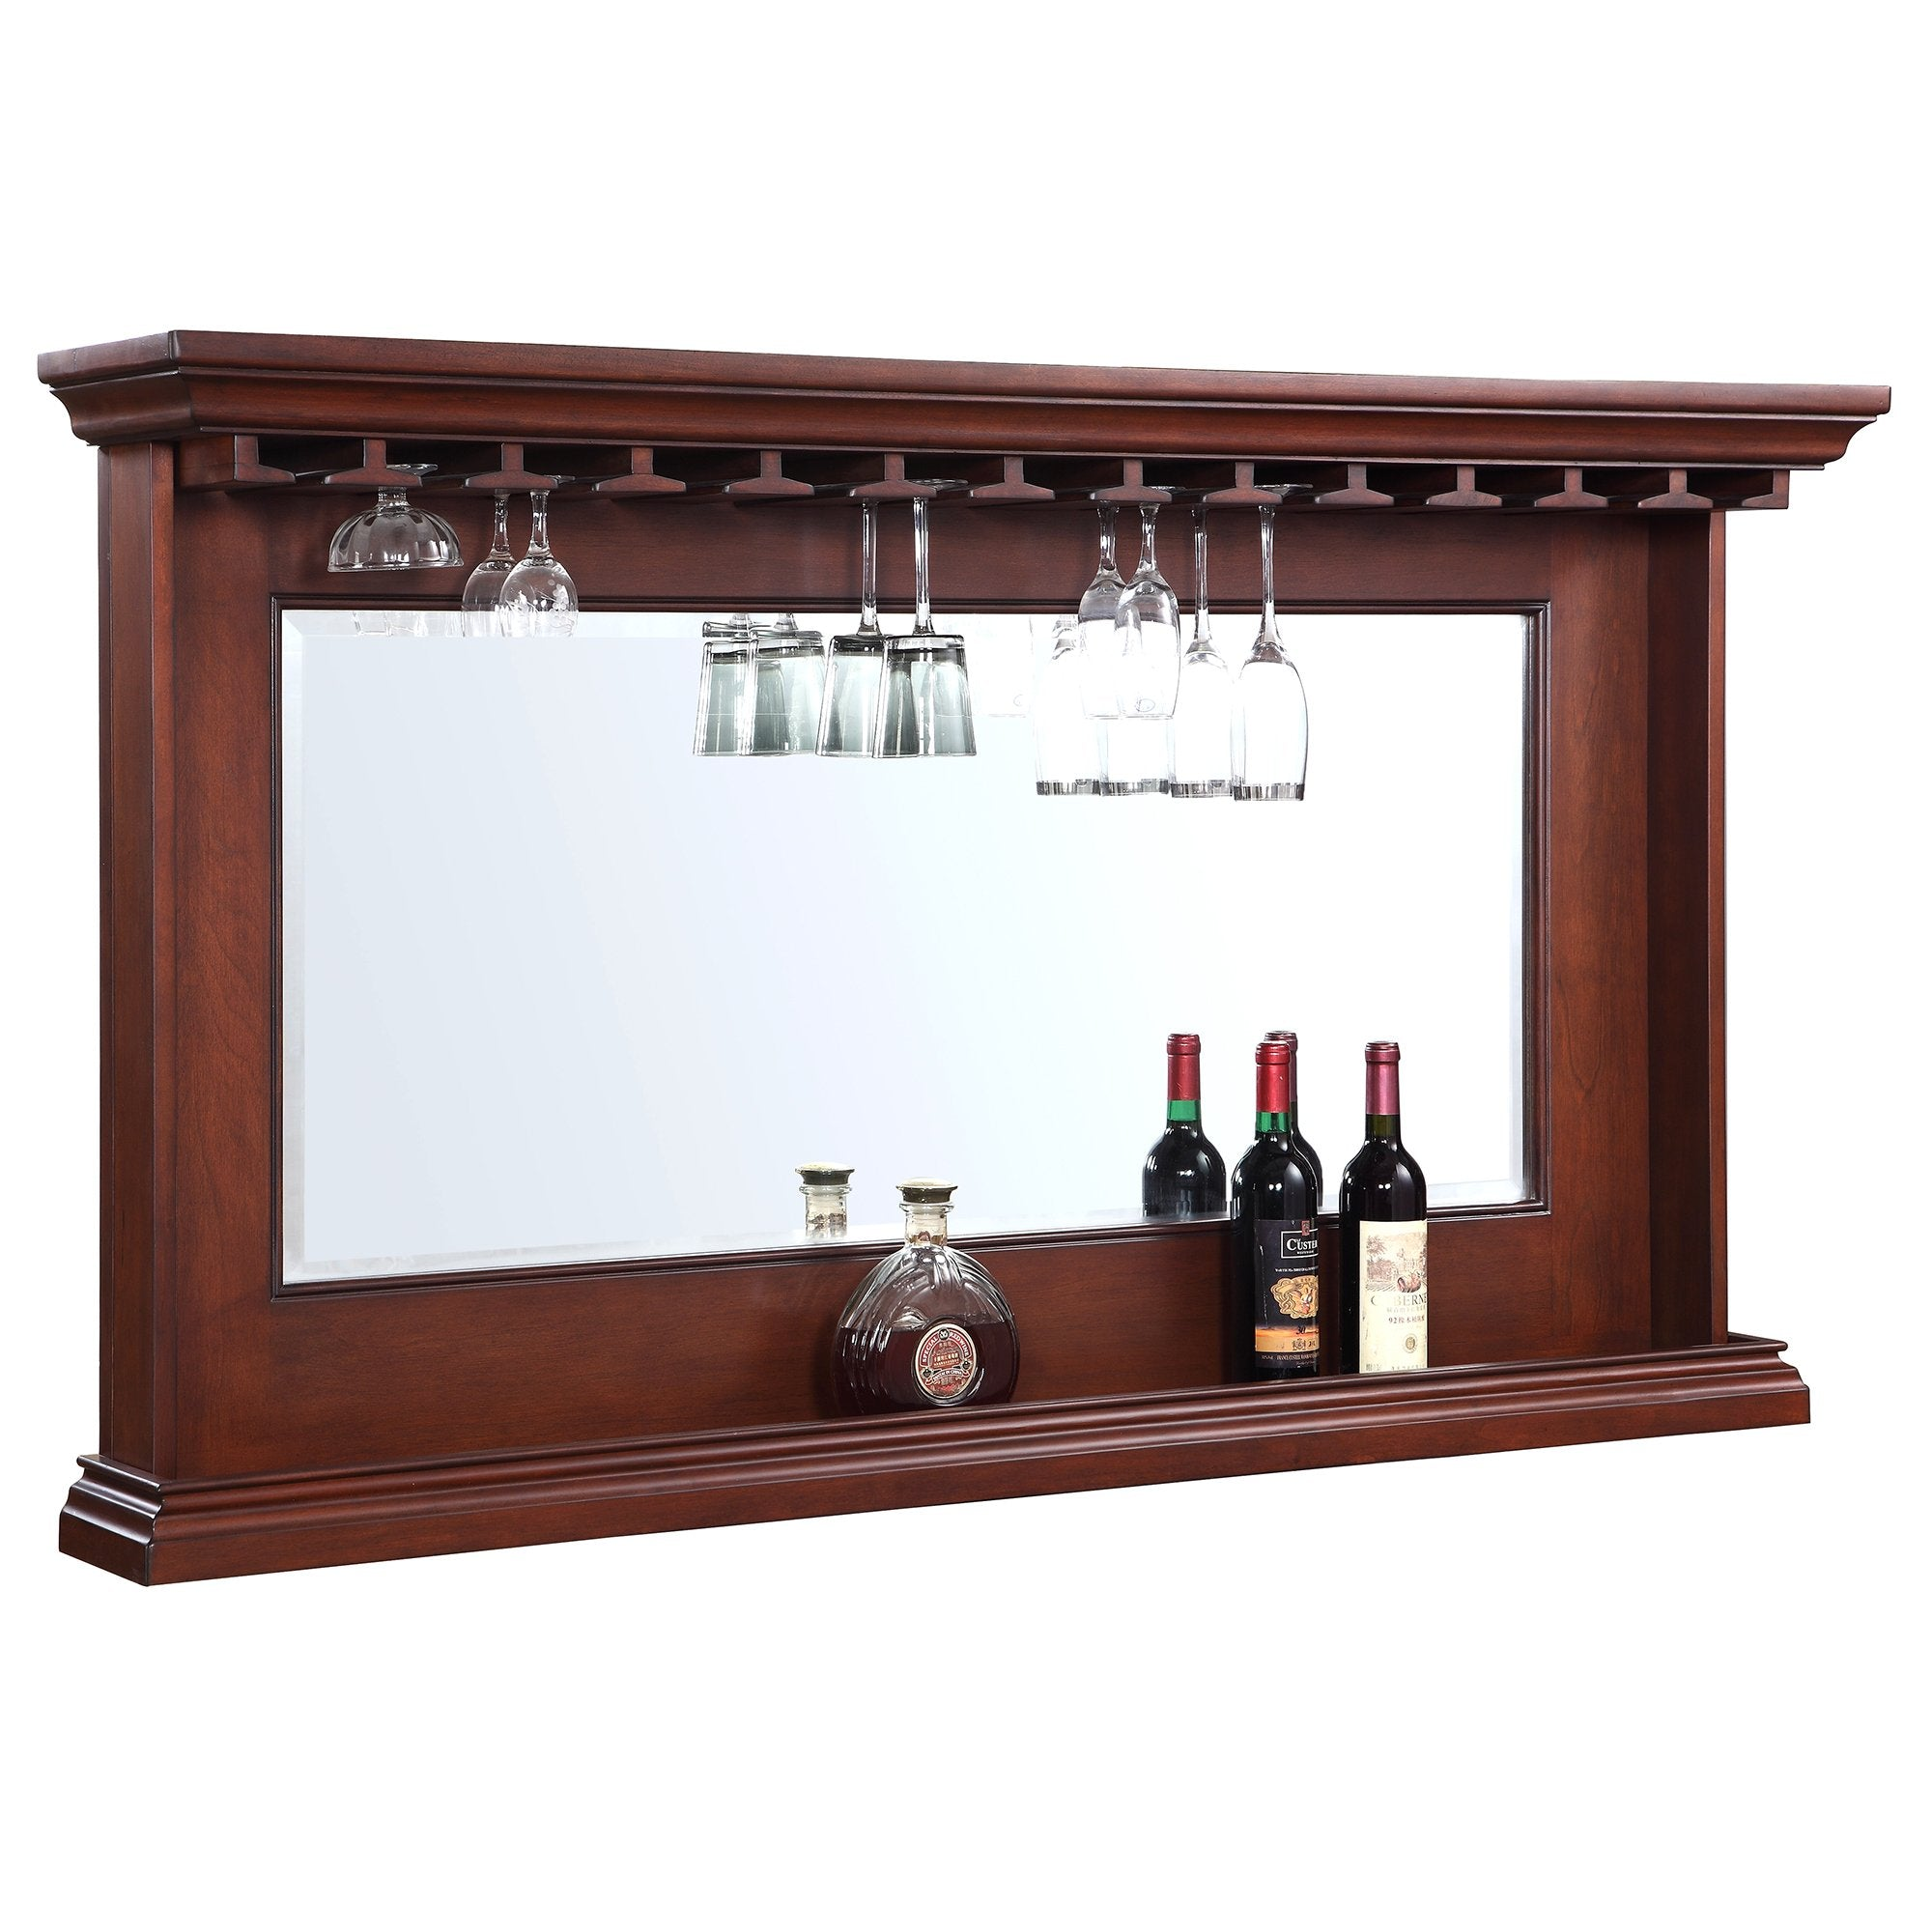 Hathaway Seville Back Bar Mirror - Gaming Blaze